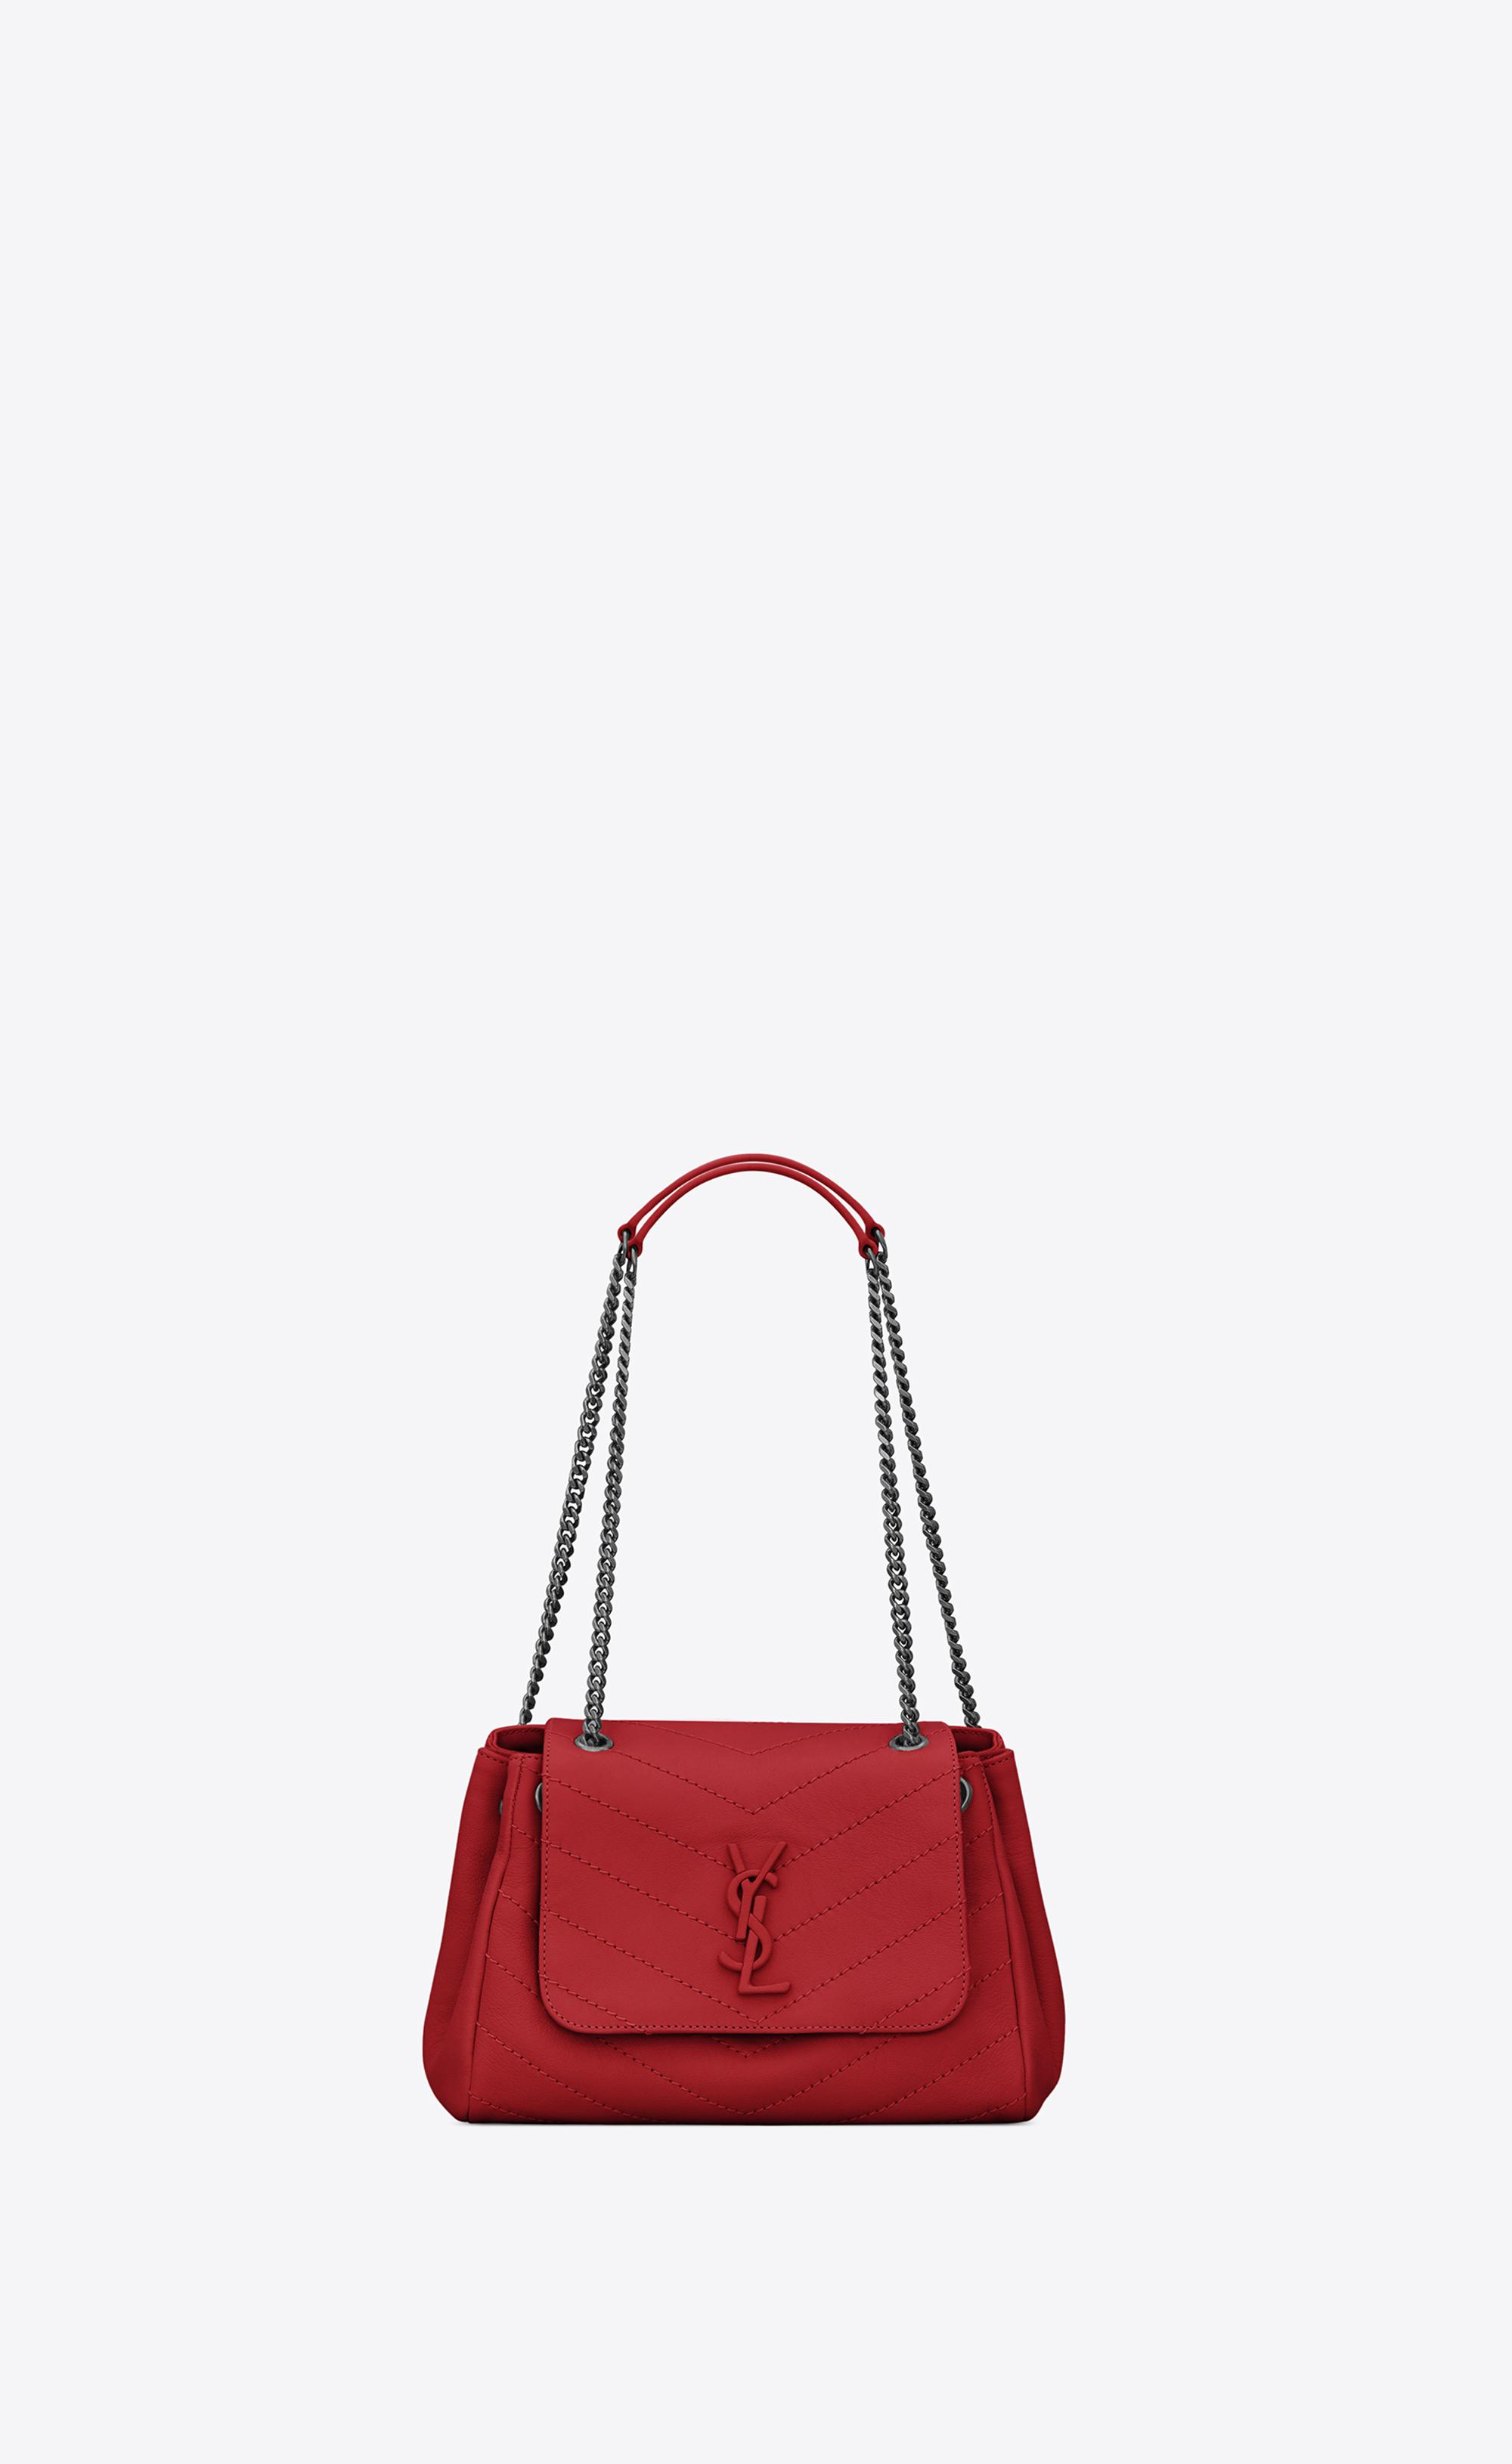 dfc69b475647 Lyst - Saint Laurent Nolita Small Chain Bag in Red